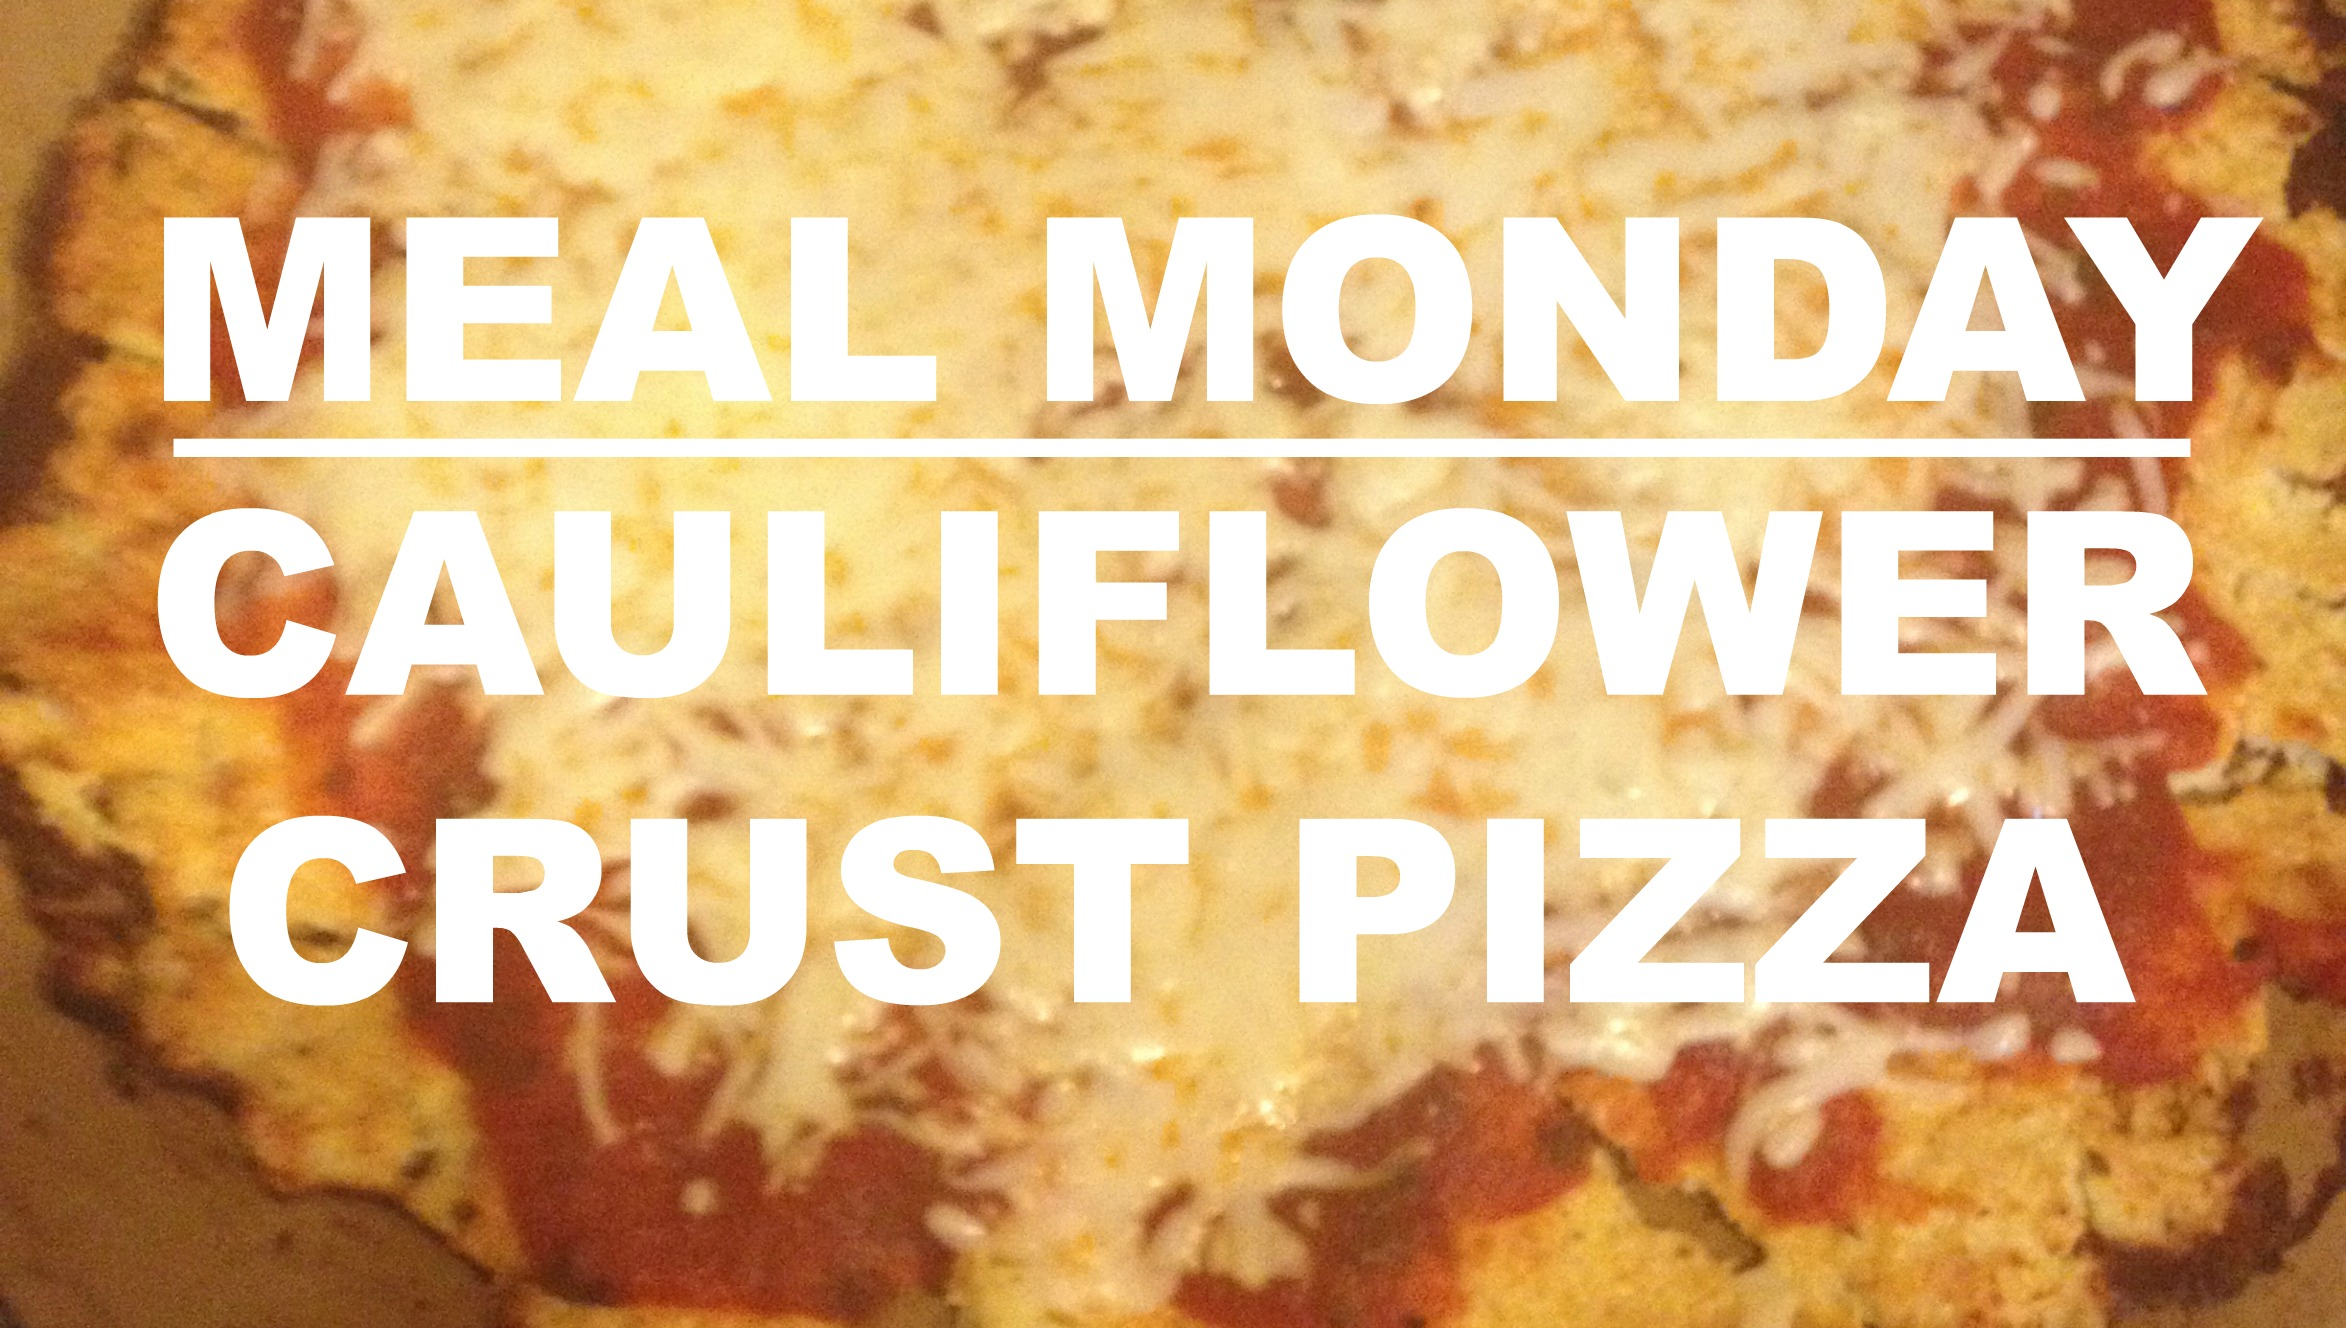 Meal Monday Cauliflower Crust Pizza